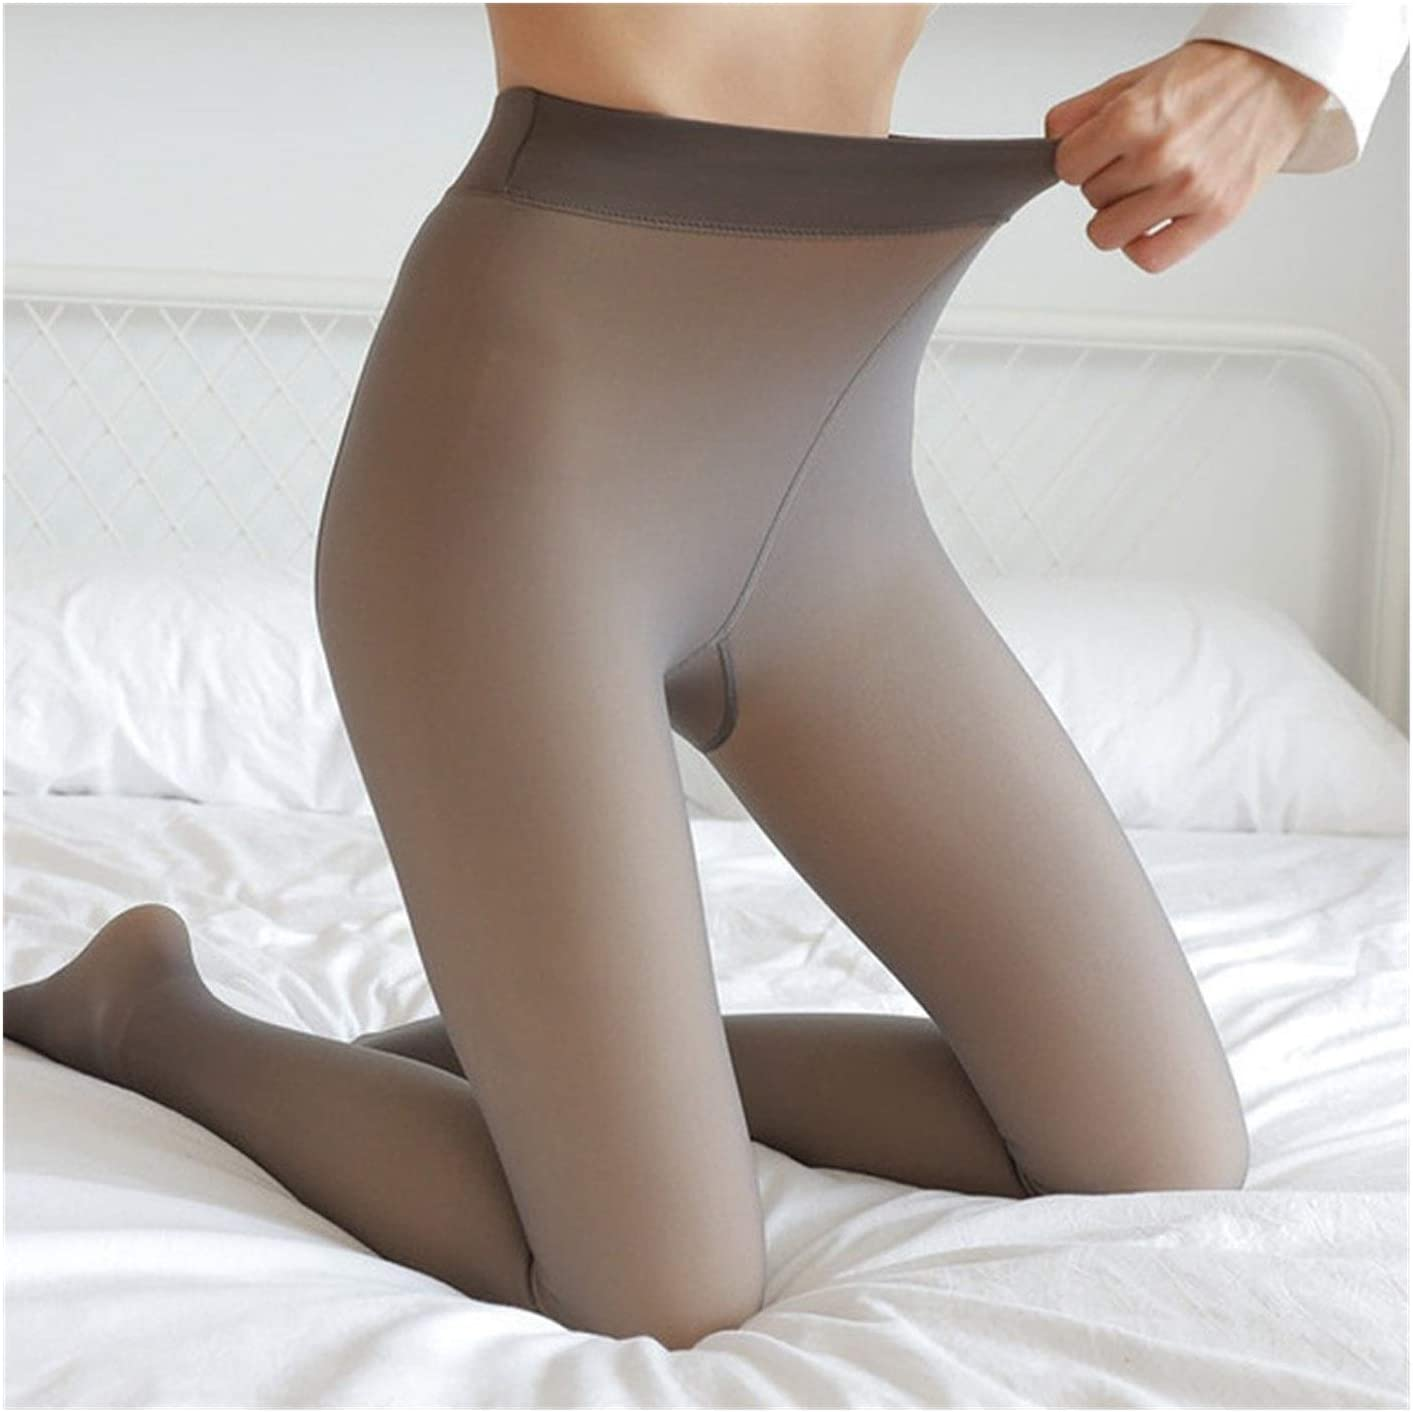 Linyuex Women Warm Pantyhose Push Up High Waist Abdomen Thick Winter Tights Fitness Slim Fit Pantyhose for Women (Color : Coffee A Thin)